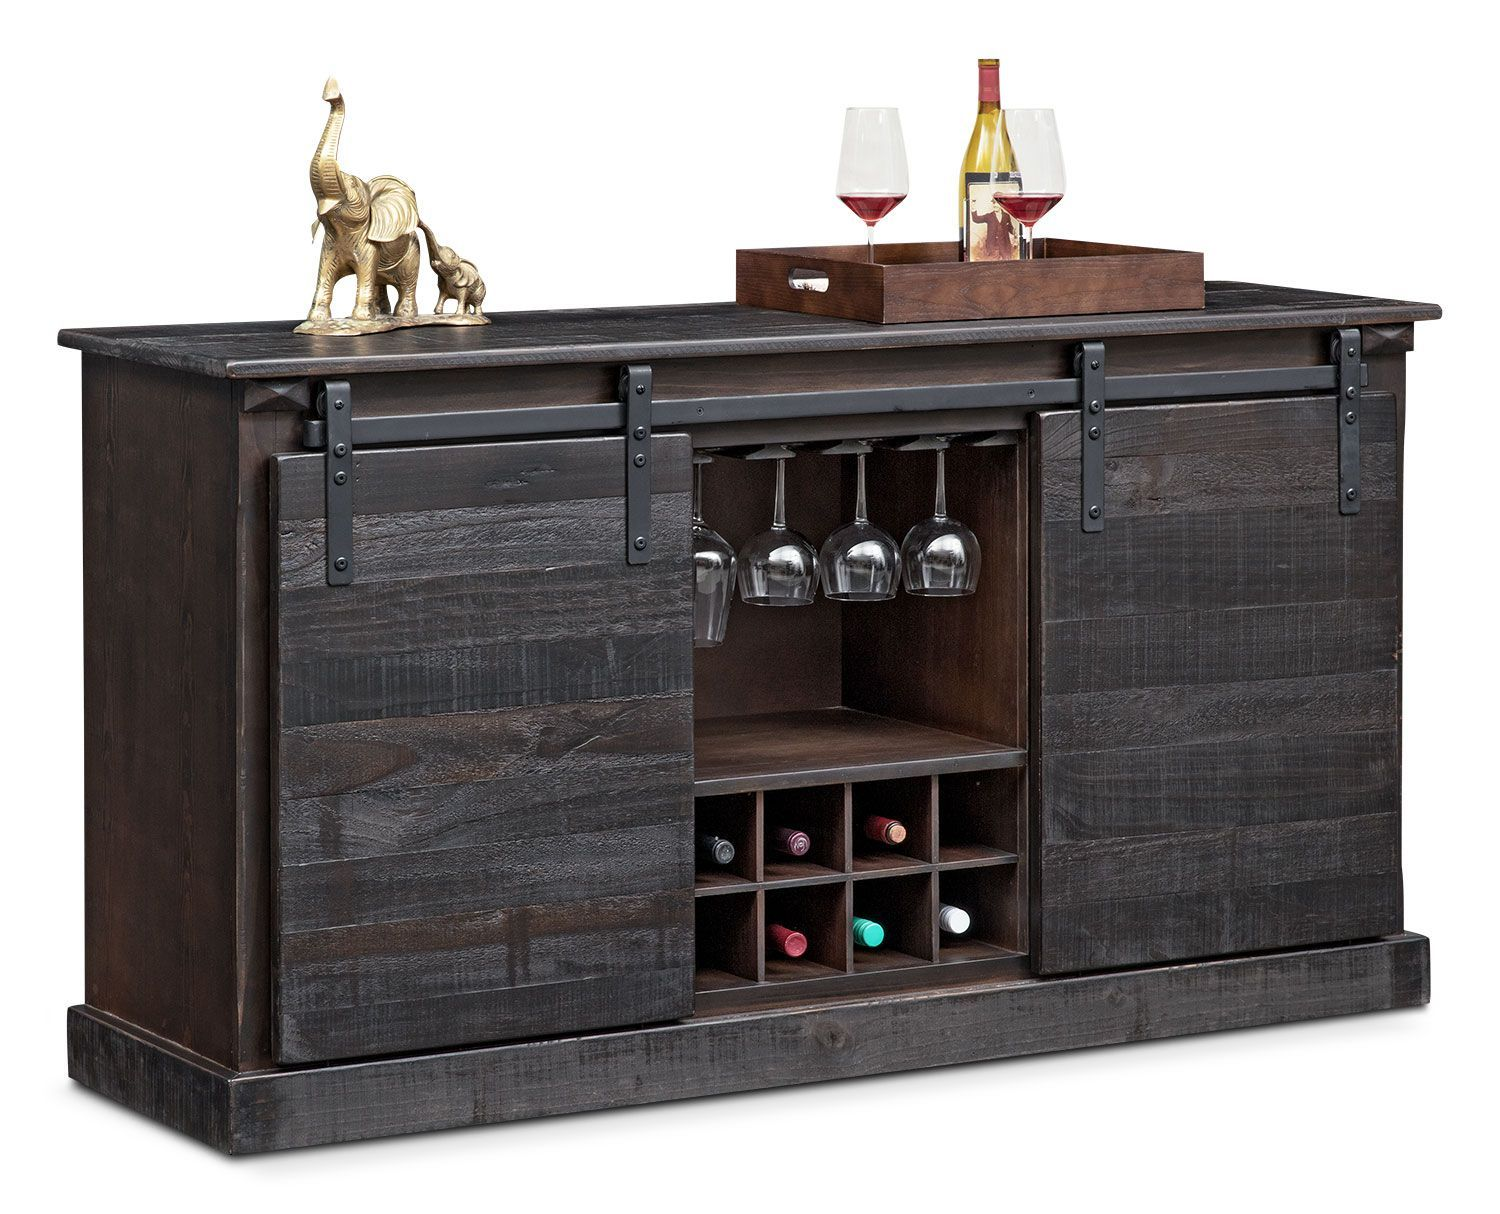 Credenza Industrial Fai Da Te : Pin by sharon halbgewachs on odds and ends pinterest angolo bar